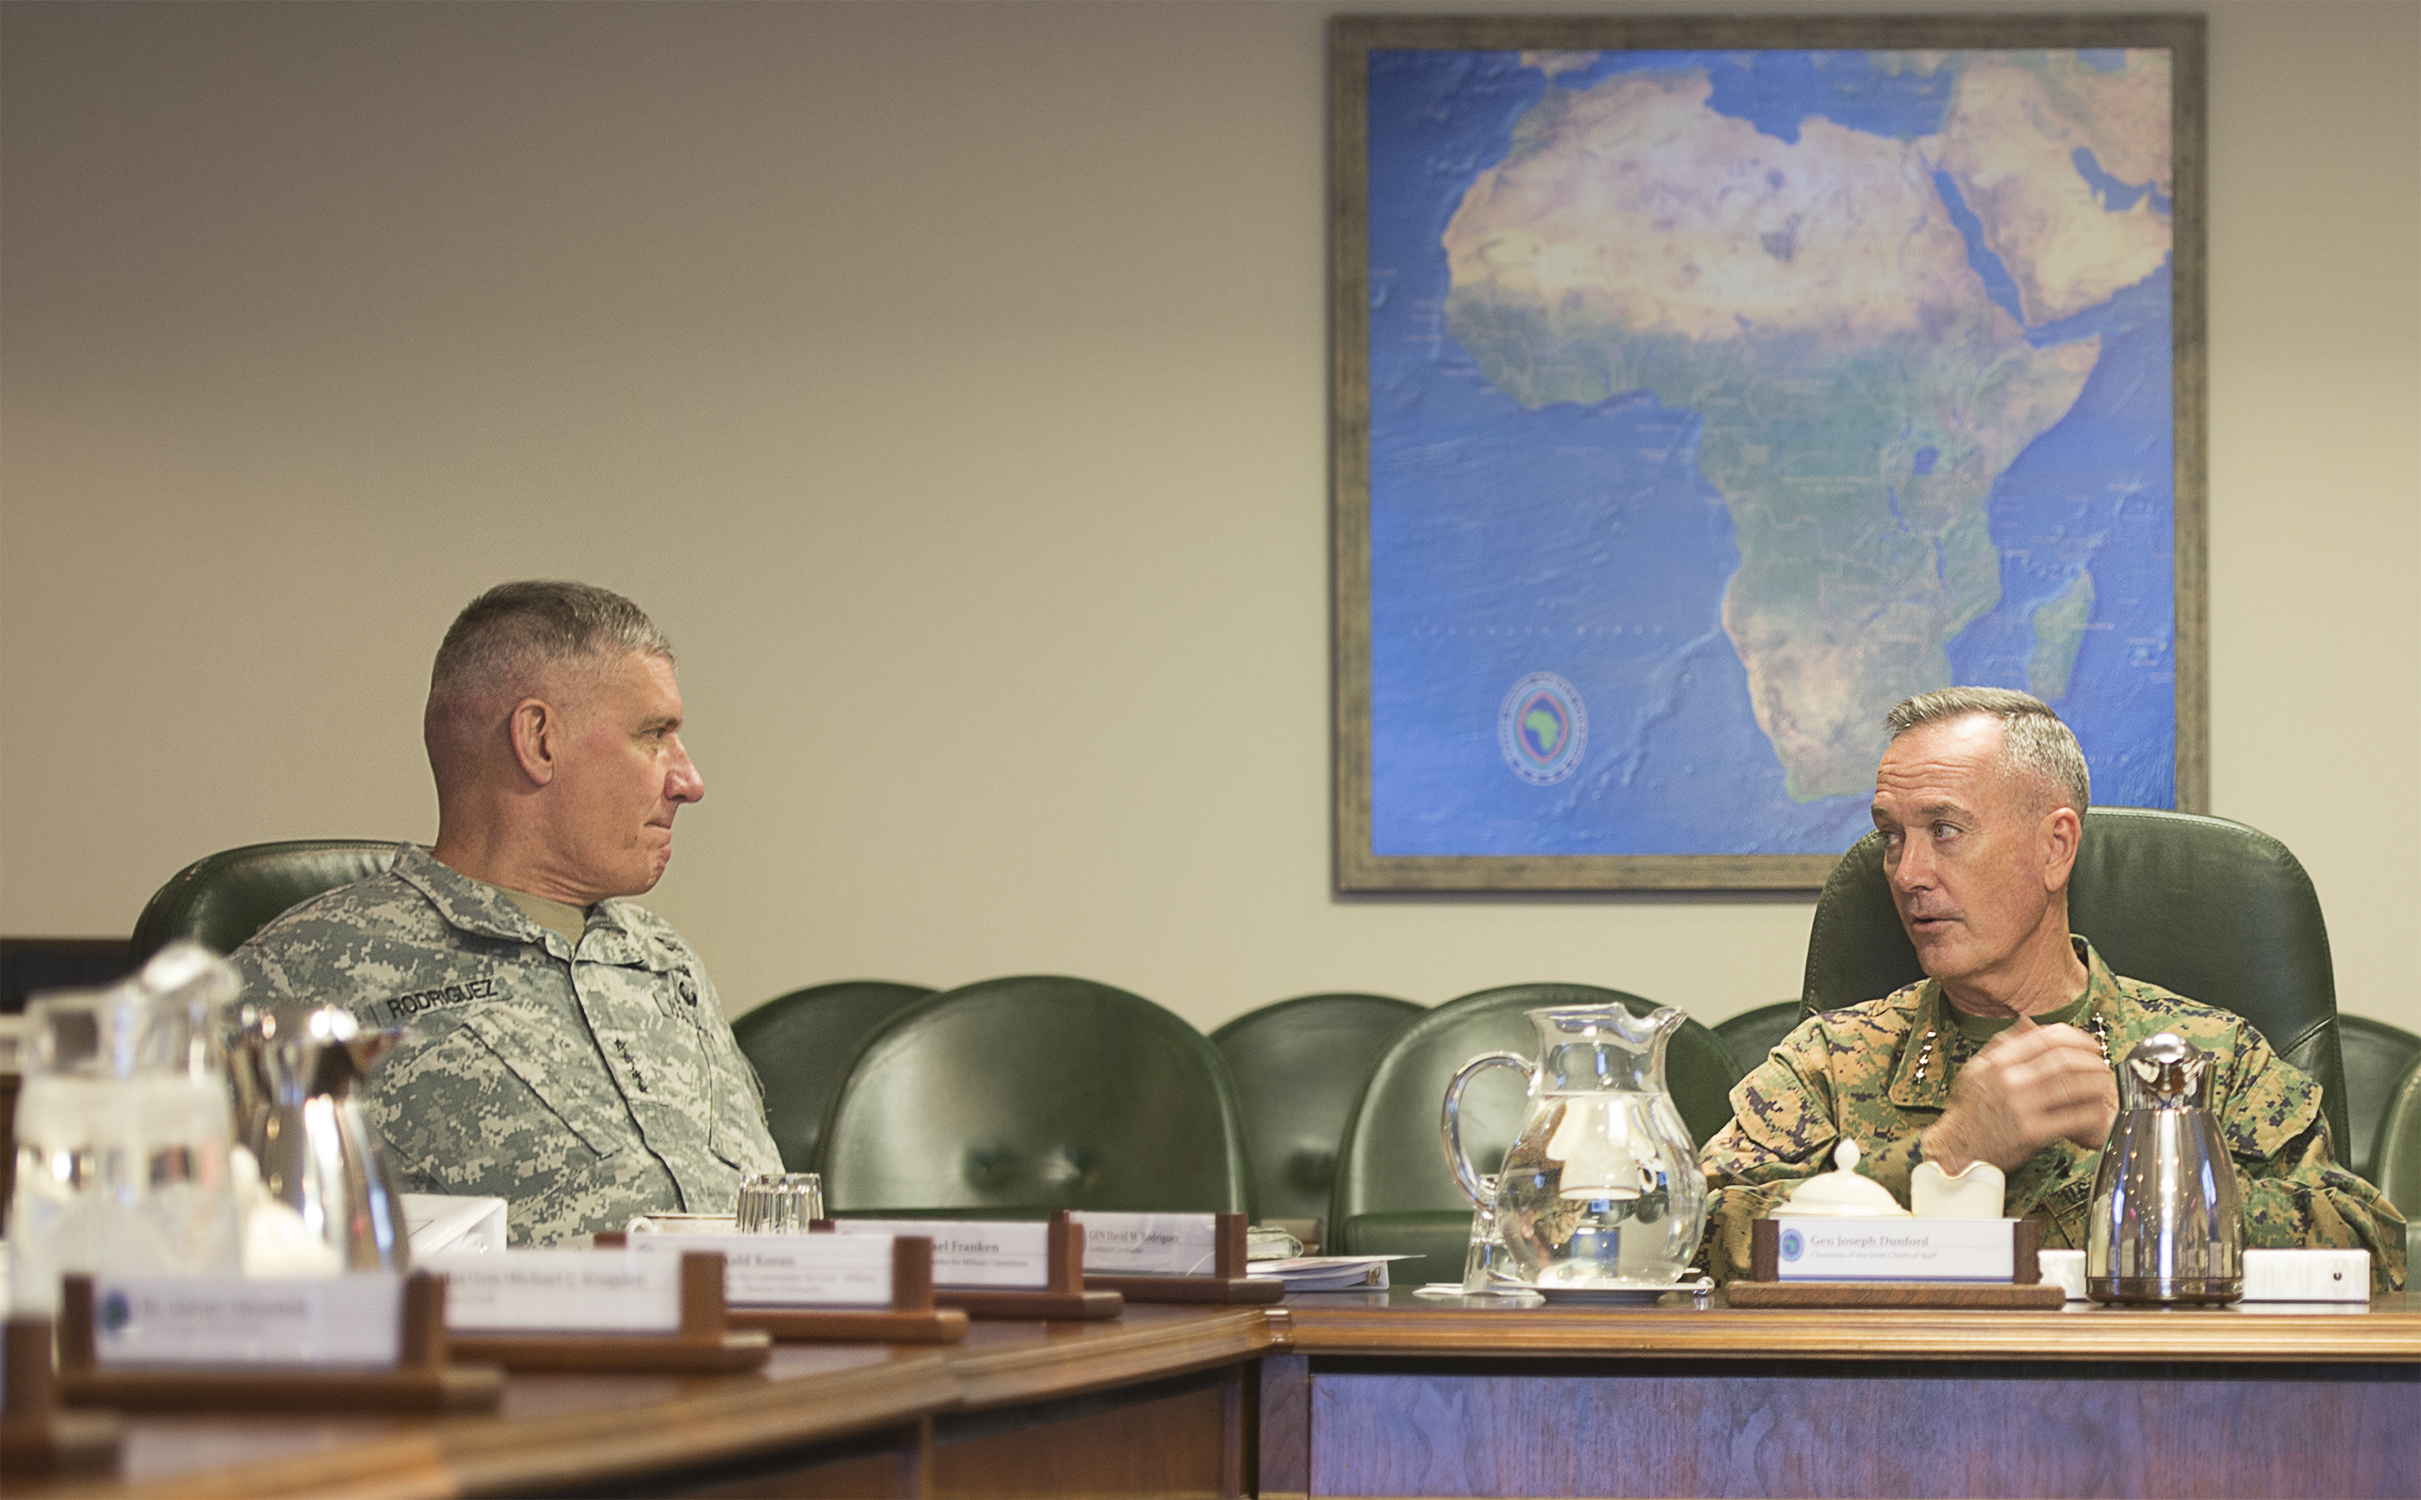 U.S. Marine Gen. Joseph F. Dunford Jr., chairman of the Joint Chiefs of Staff, (right) meets with U.S. Army Gen. David M. Rodriguez, commander, U.S. Africa Command, at AFRICOM headquarters in Stuttgart, Germany Jan. 4, 2016. (DoD Photo by Navy Petty Officer 2nd Class Dominique A. Pineiro)